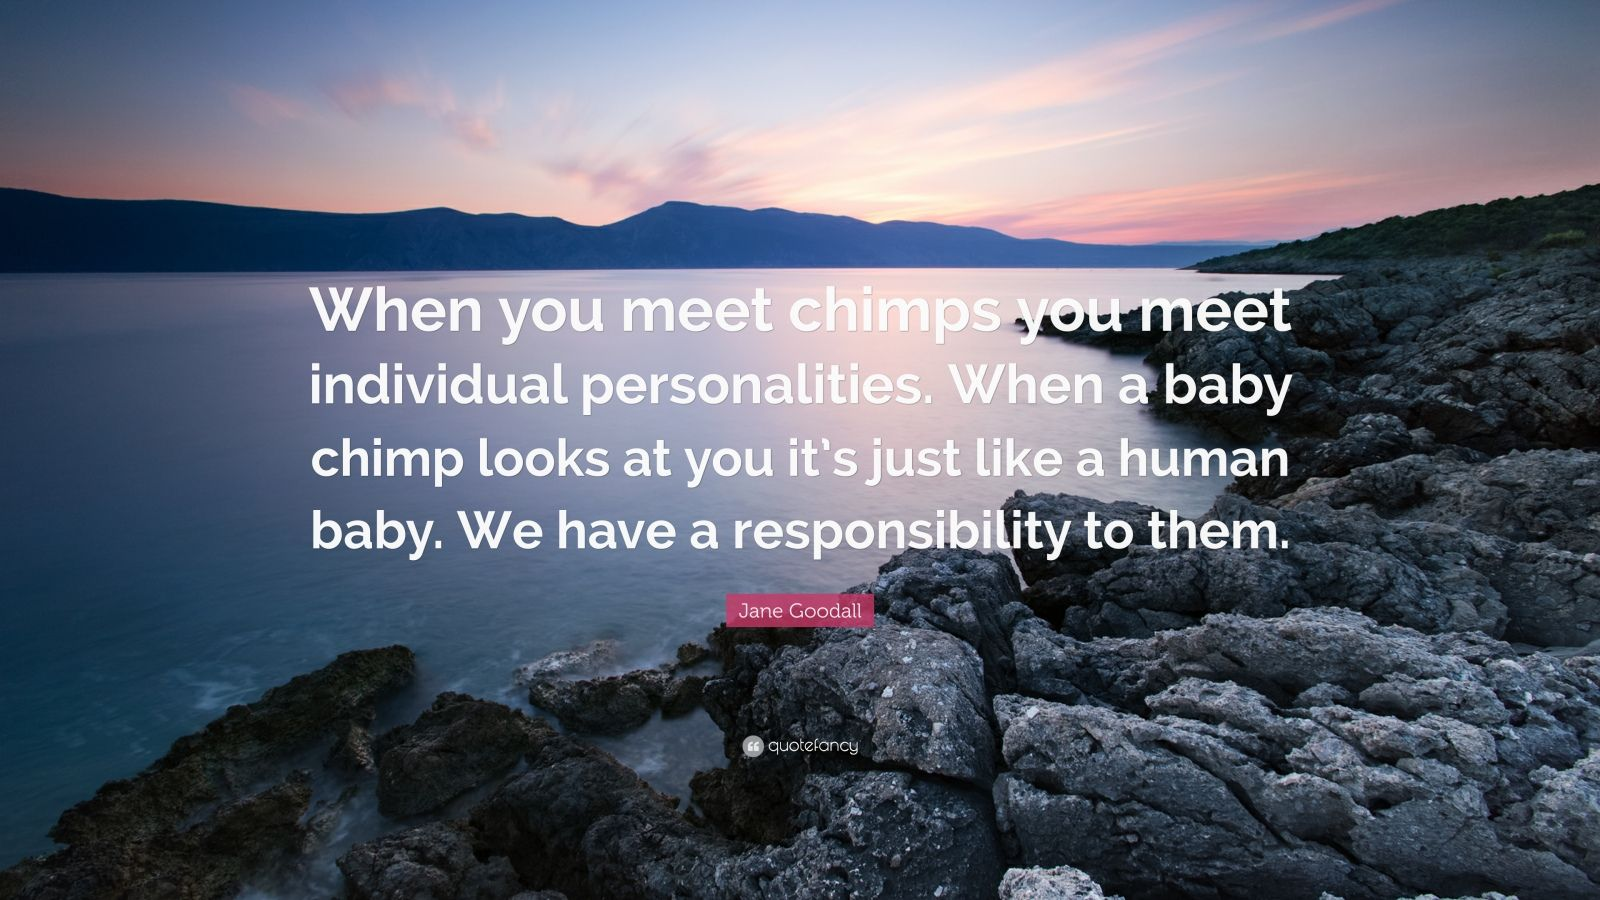 """Jane Goodall Quote: """"When you meet chimps you meet individual personalities. When a baby chimp looks at you it's just like a human baby. We have a responsibility to them."""""""